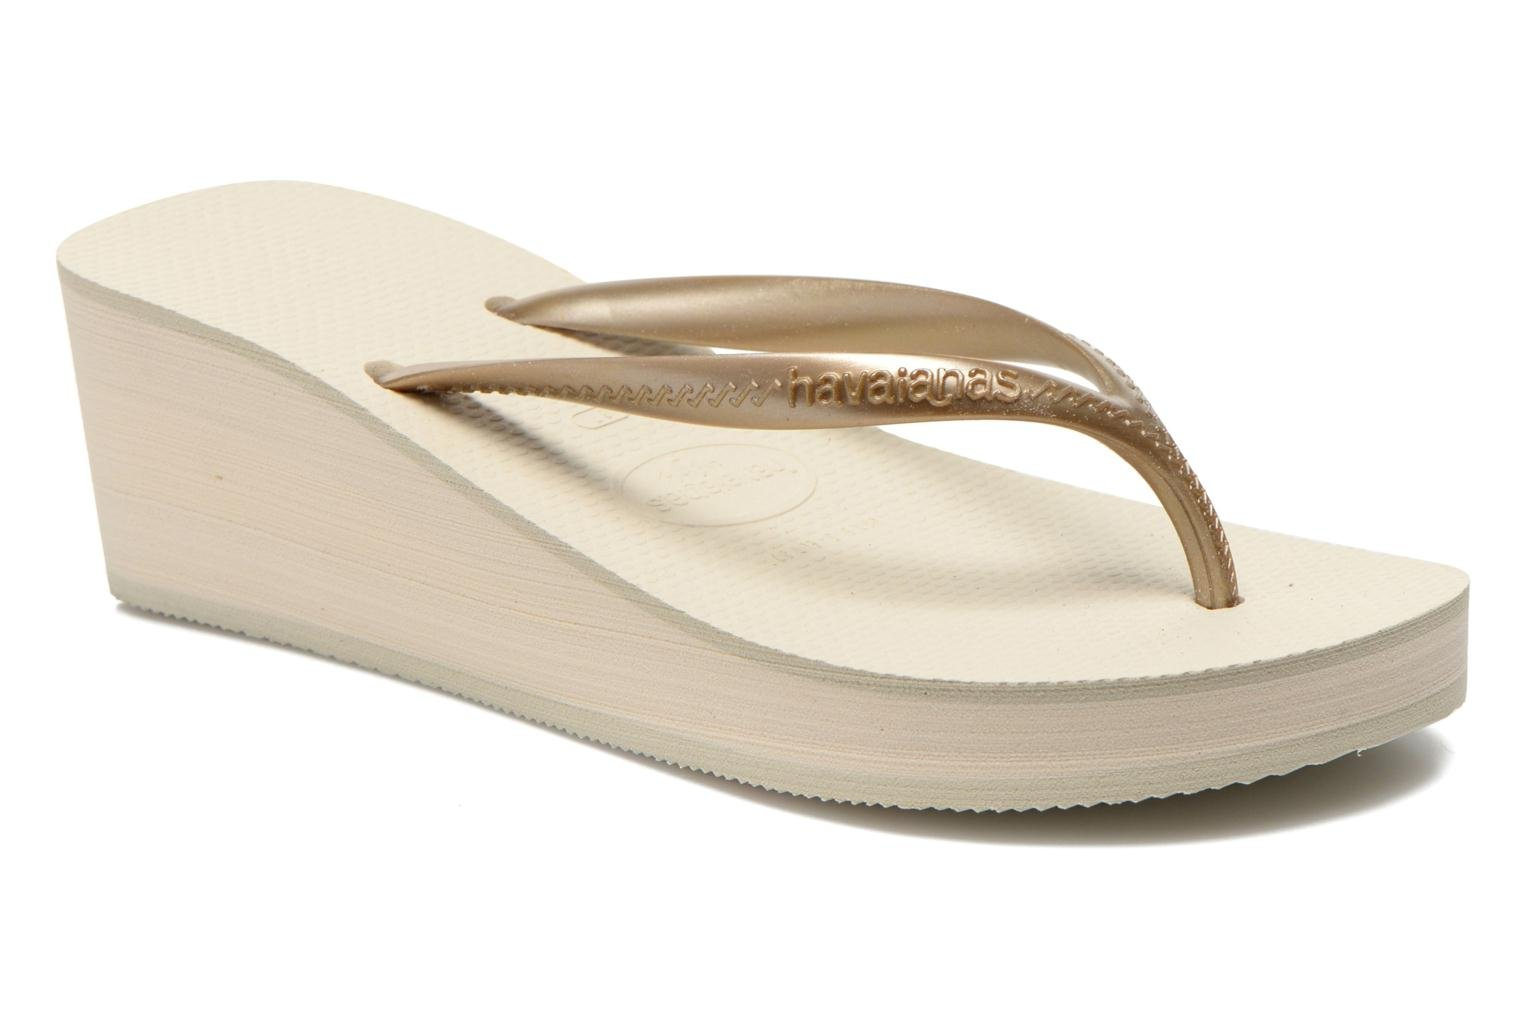 Havaianas - Damen - High Fashion - Zehensandalen - gold/bronze xai16xf